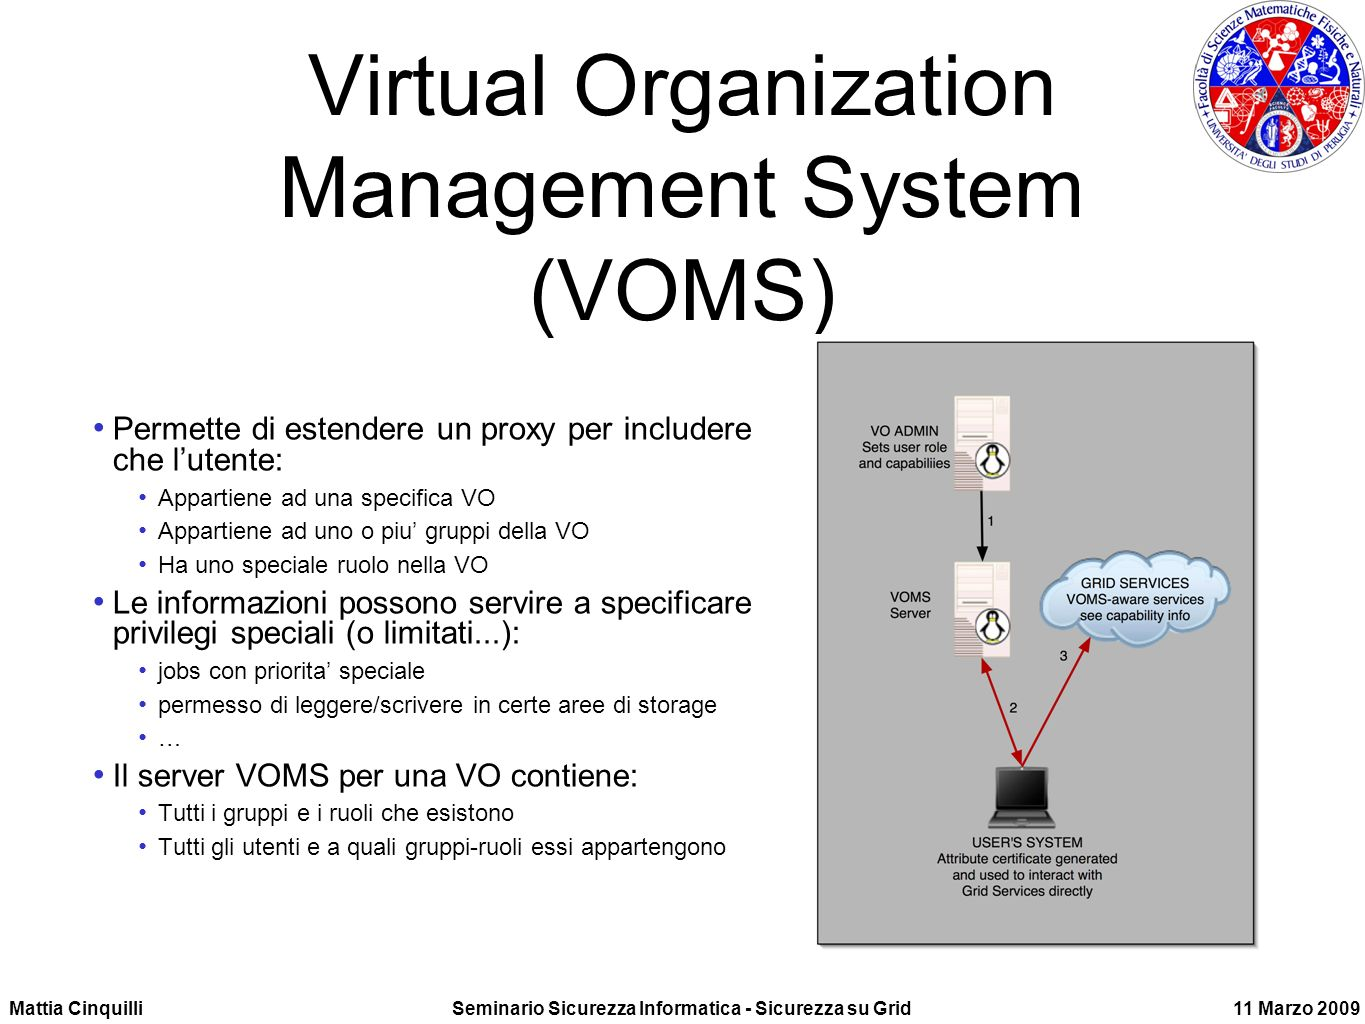 Virtual Organization Management System (VOMS)